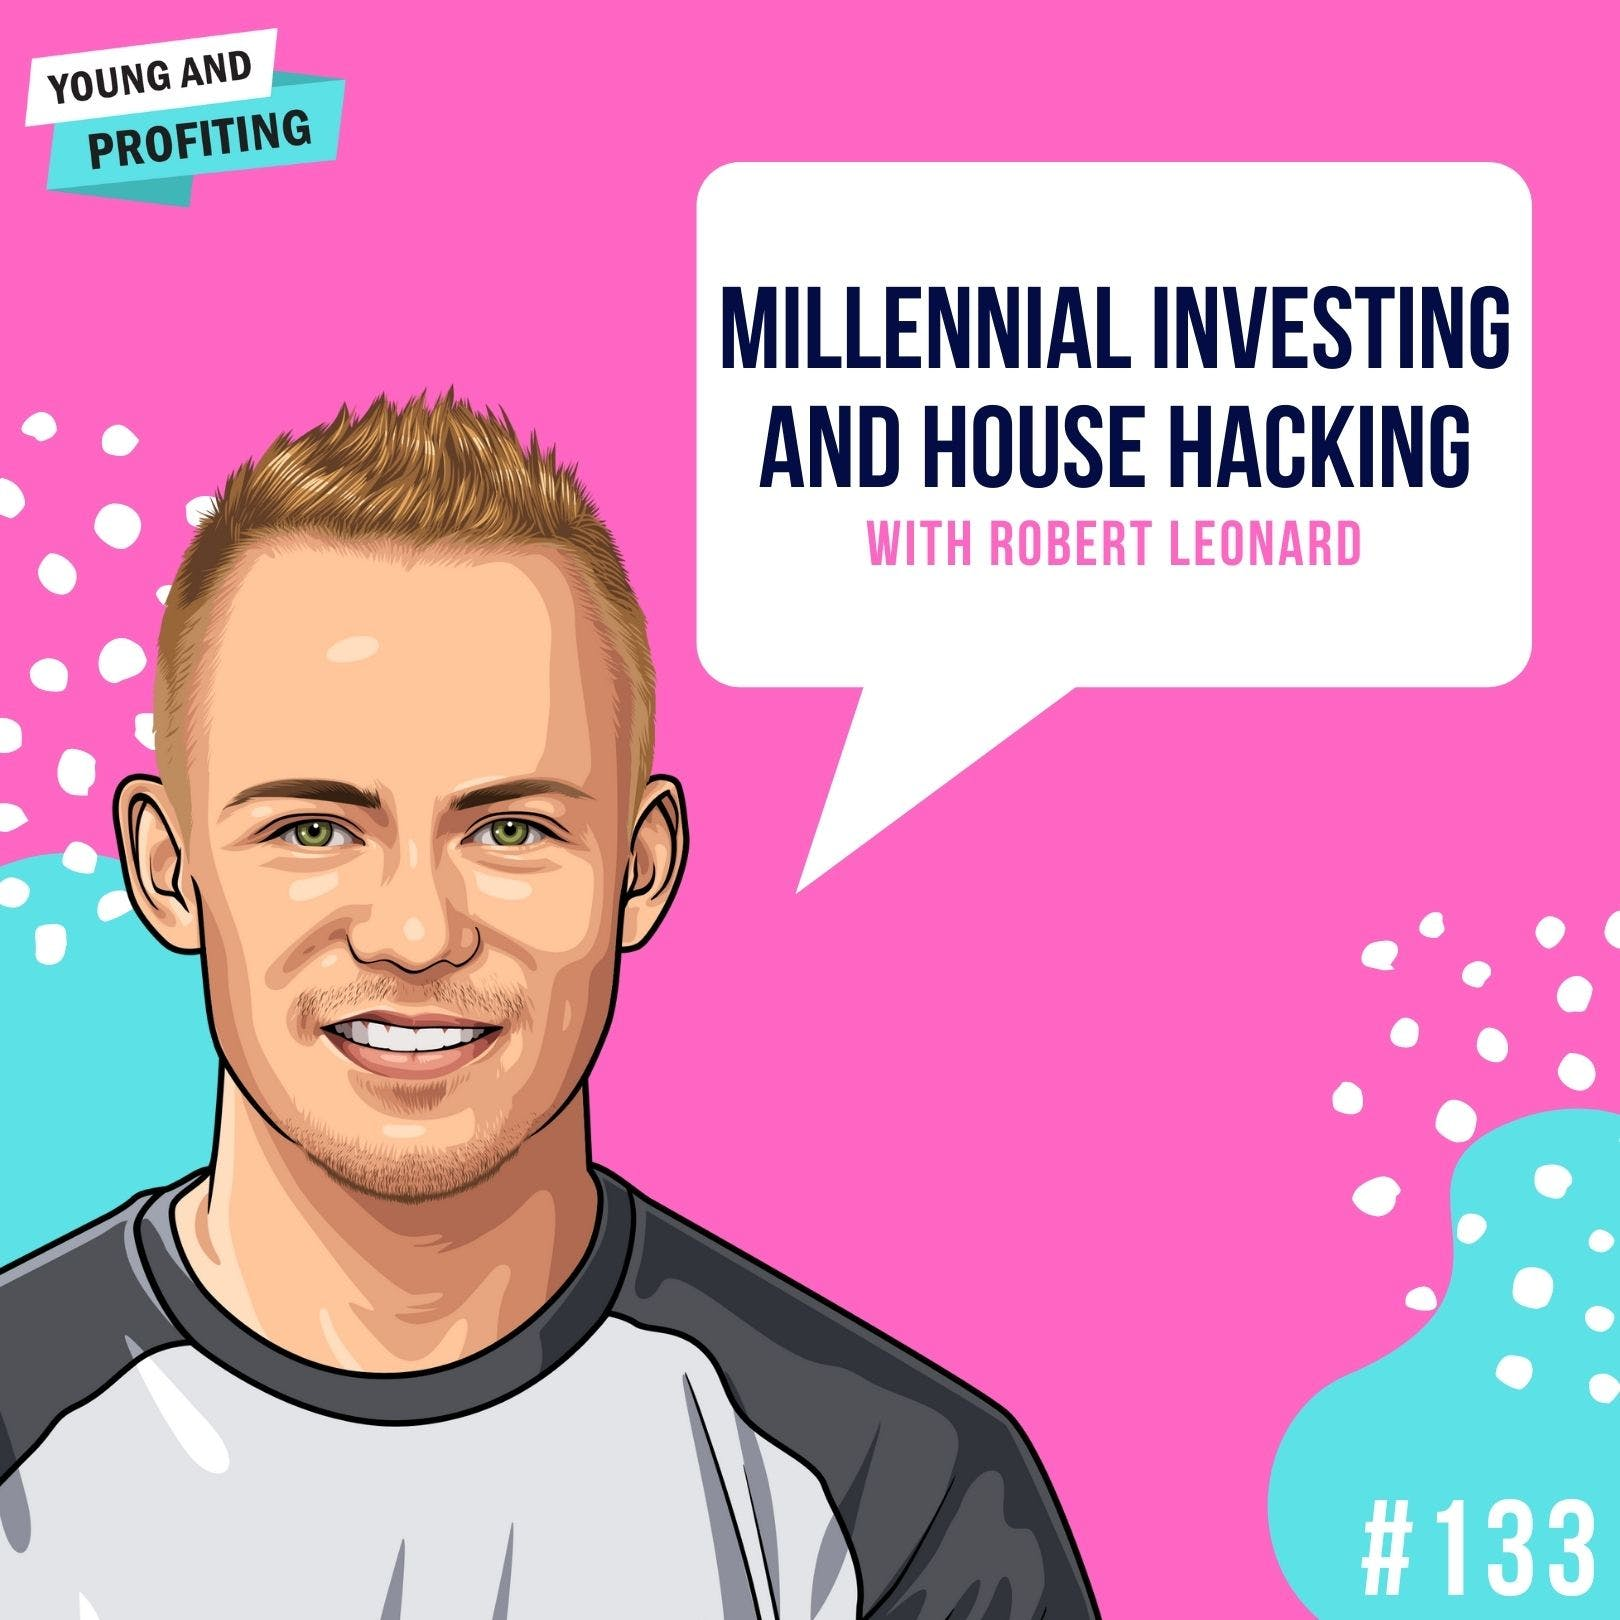 #133: Millennial Investing and House Hacking with Robert Leonard